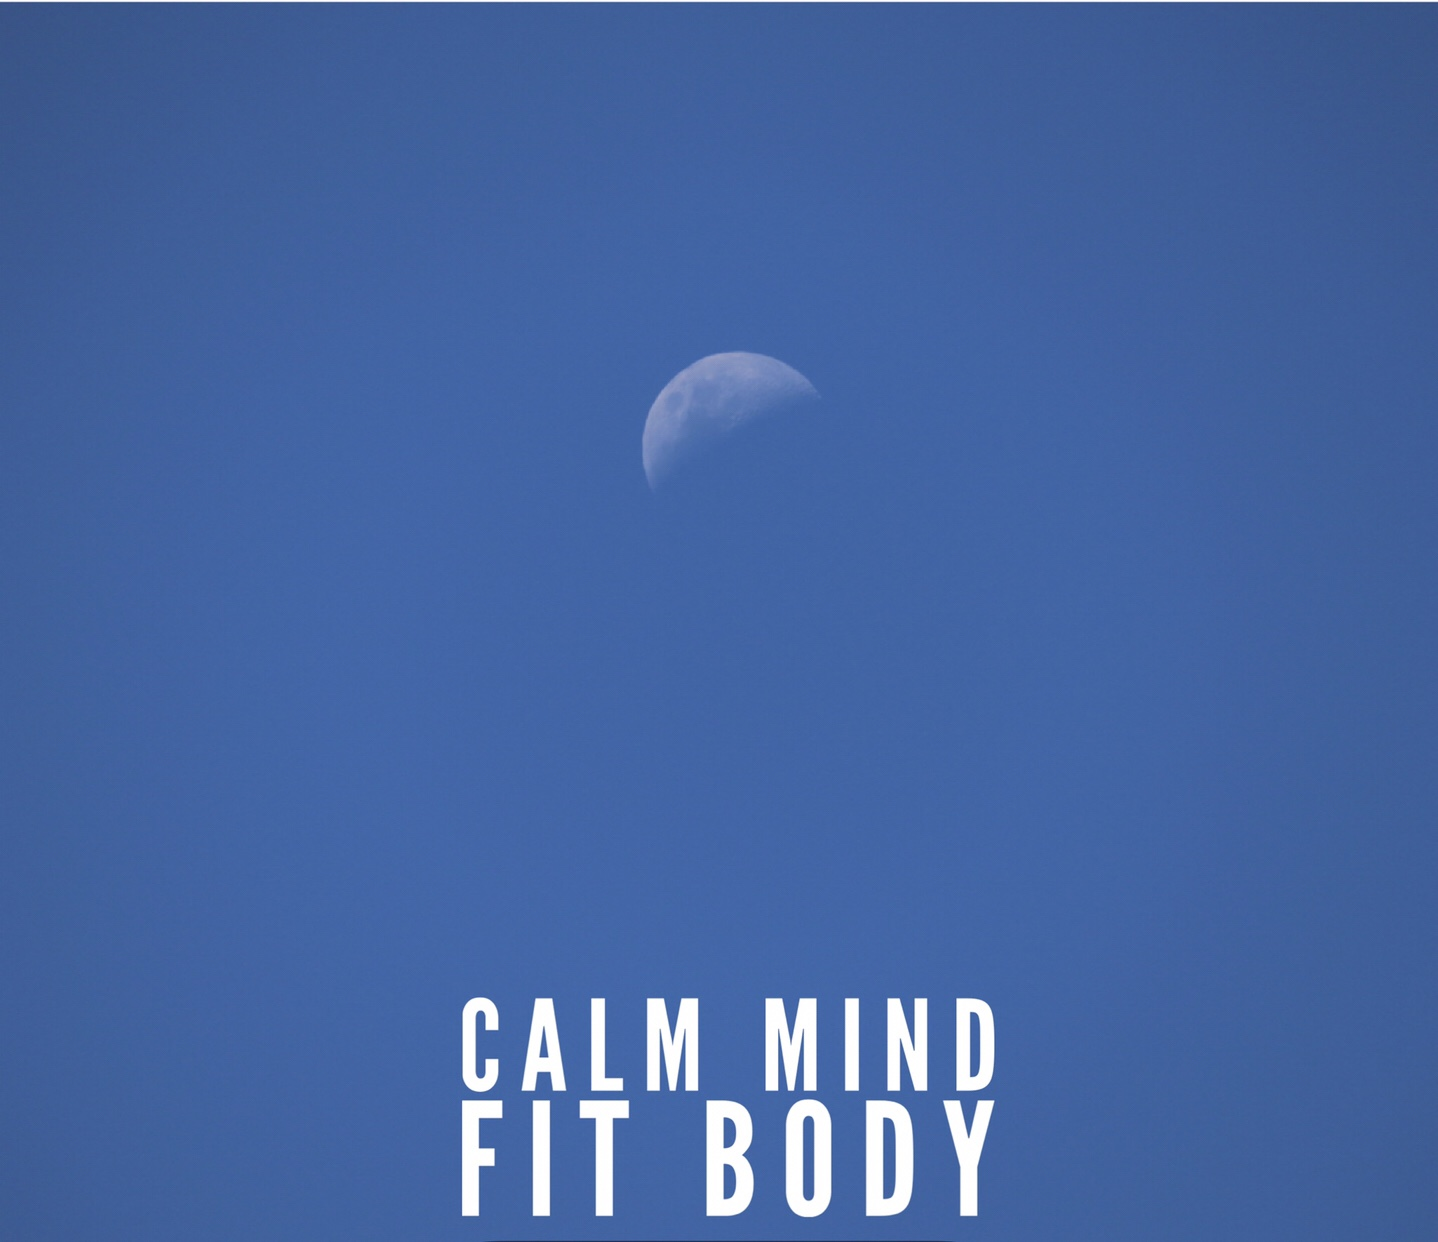 calm mind fit body brad mcewen